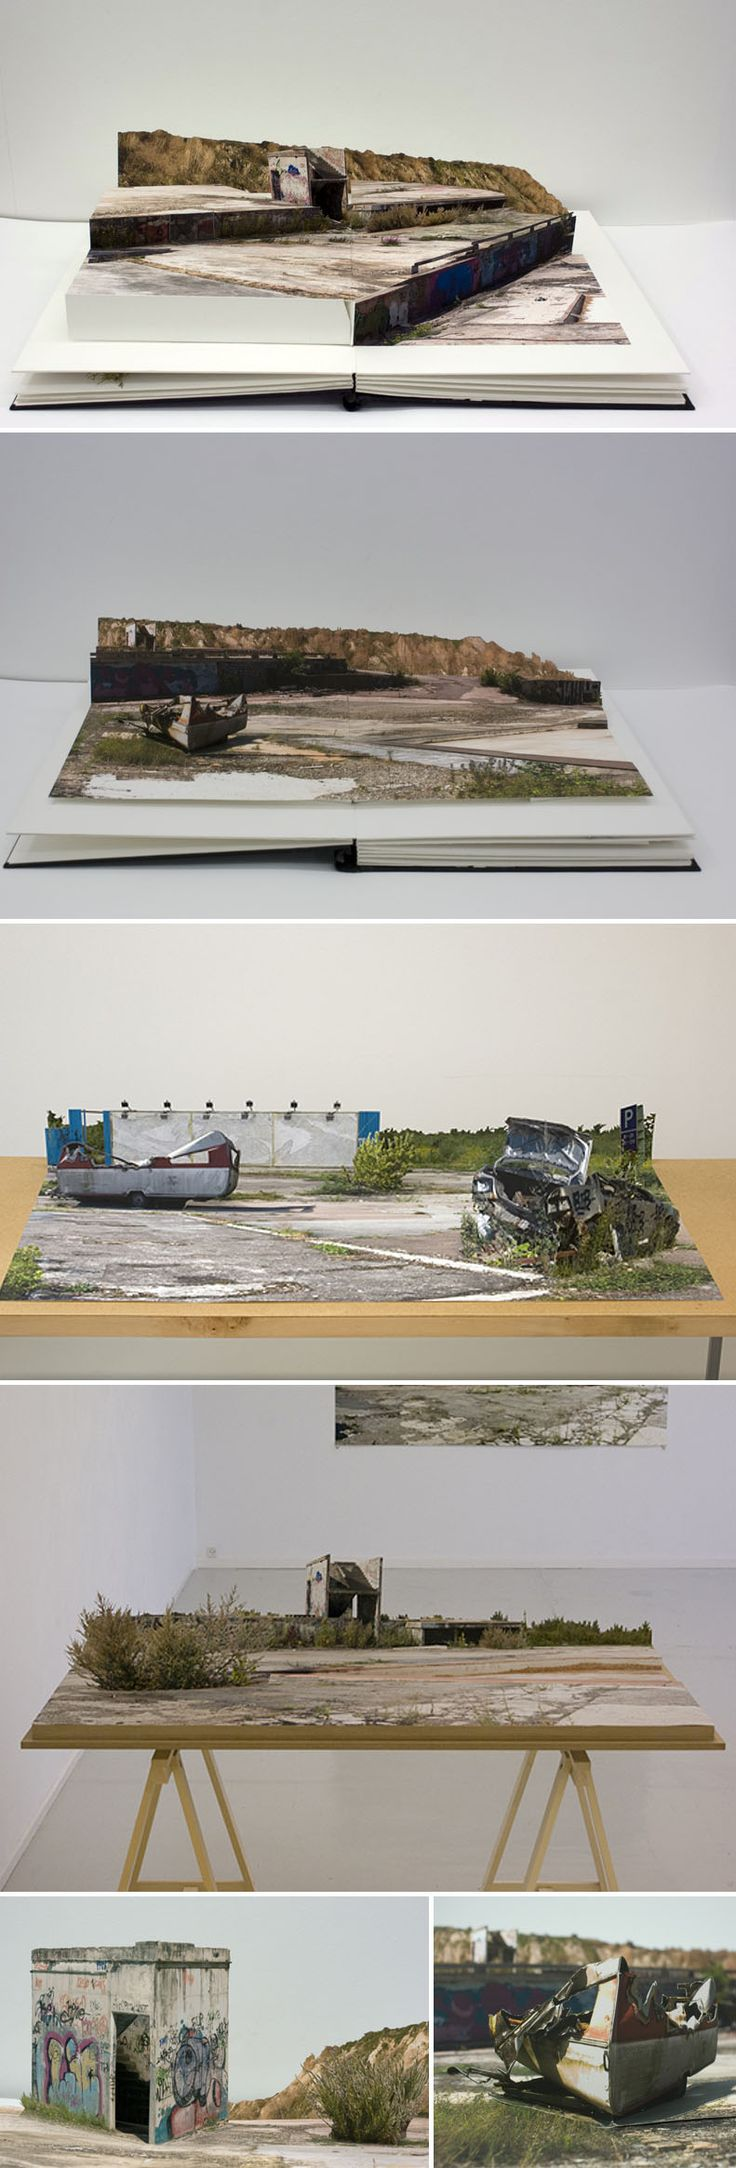 """Where the Sun now stands"" Pop-up photo collage books by Andreas Johansson"